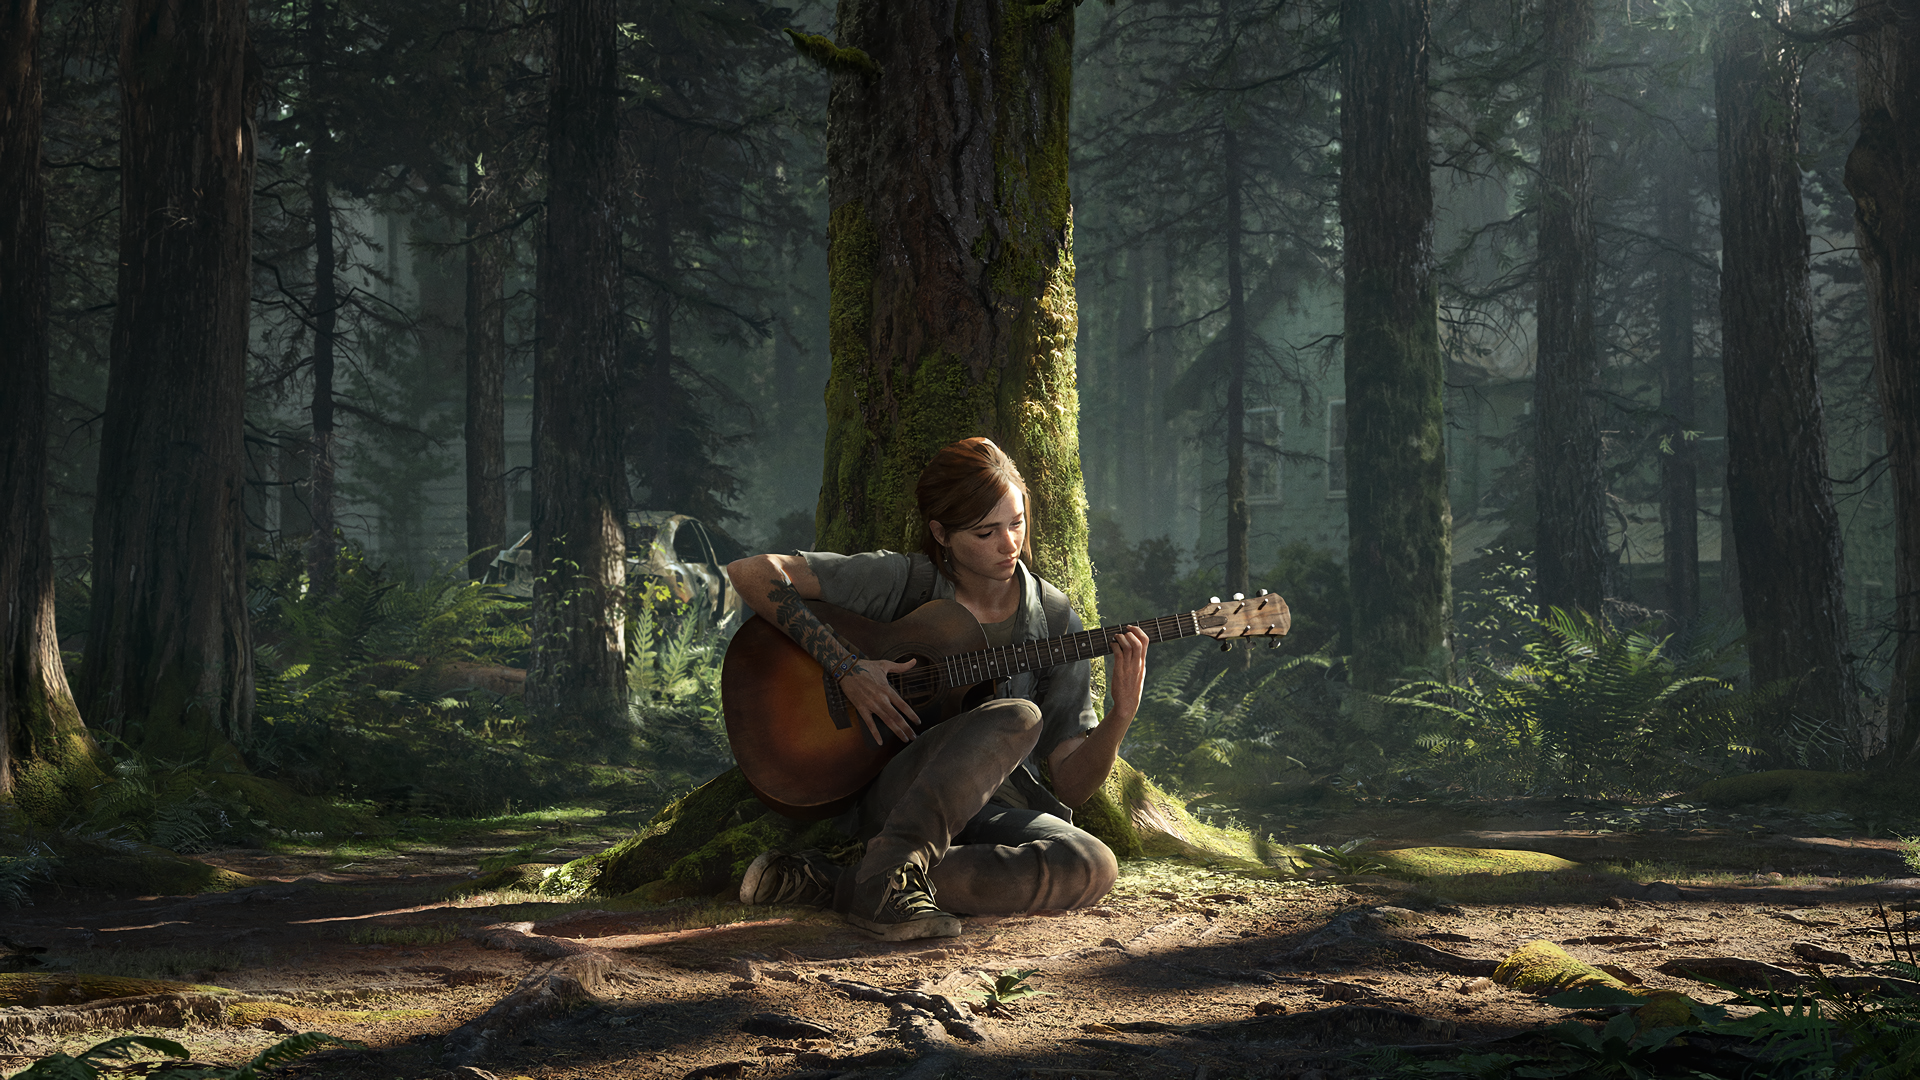 81 The Last of Us Part II HD Wallpapers | Background Images - Wallpaper Abyss